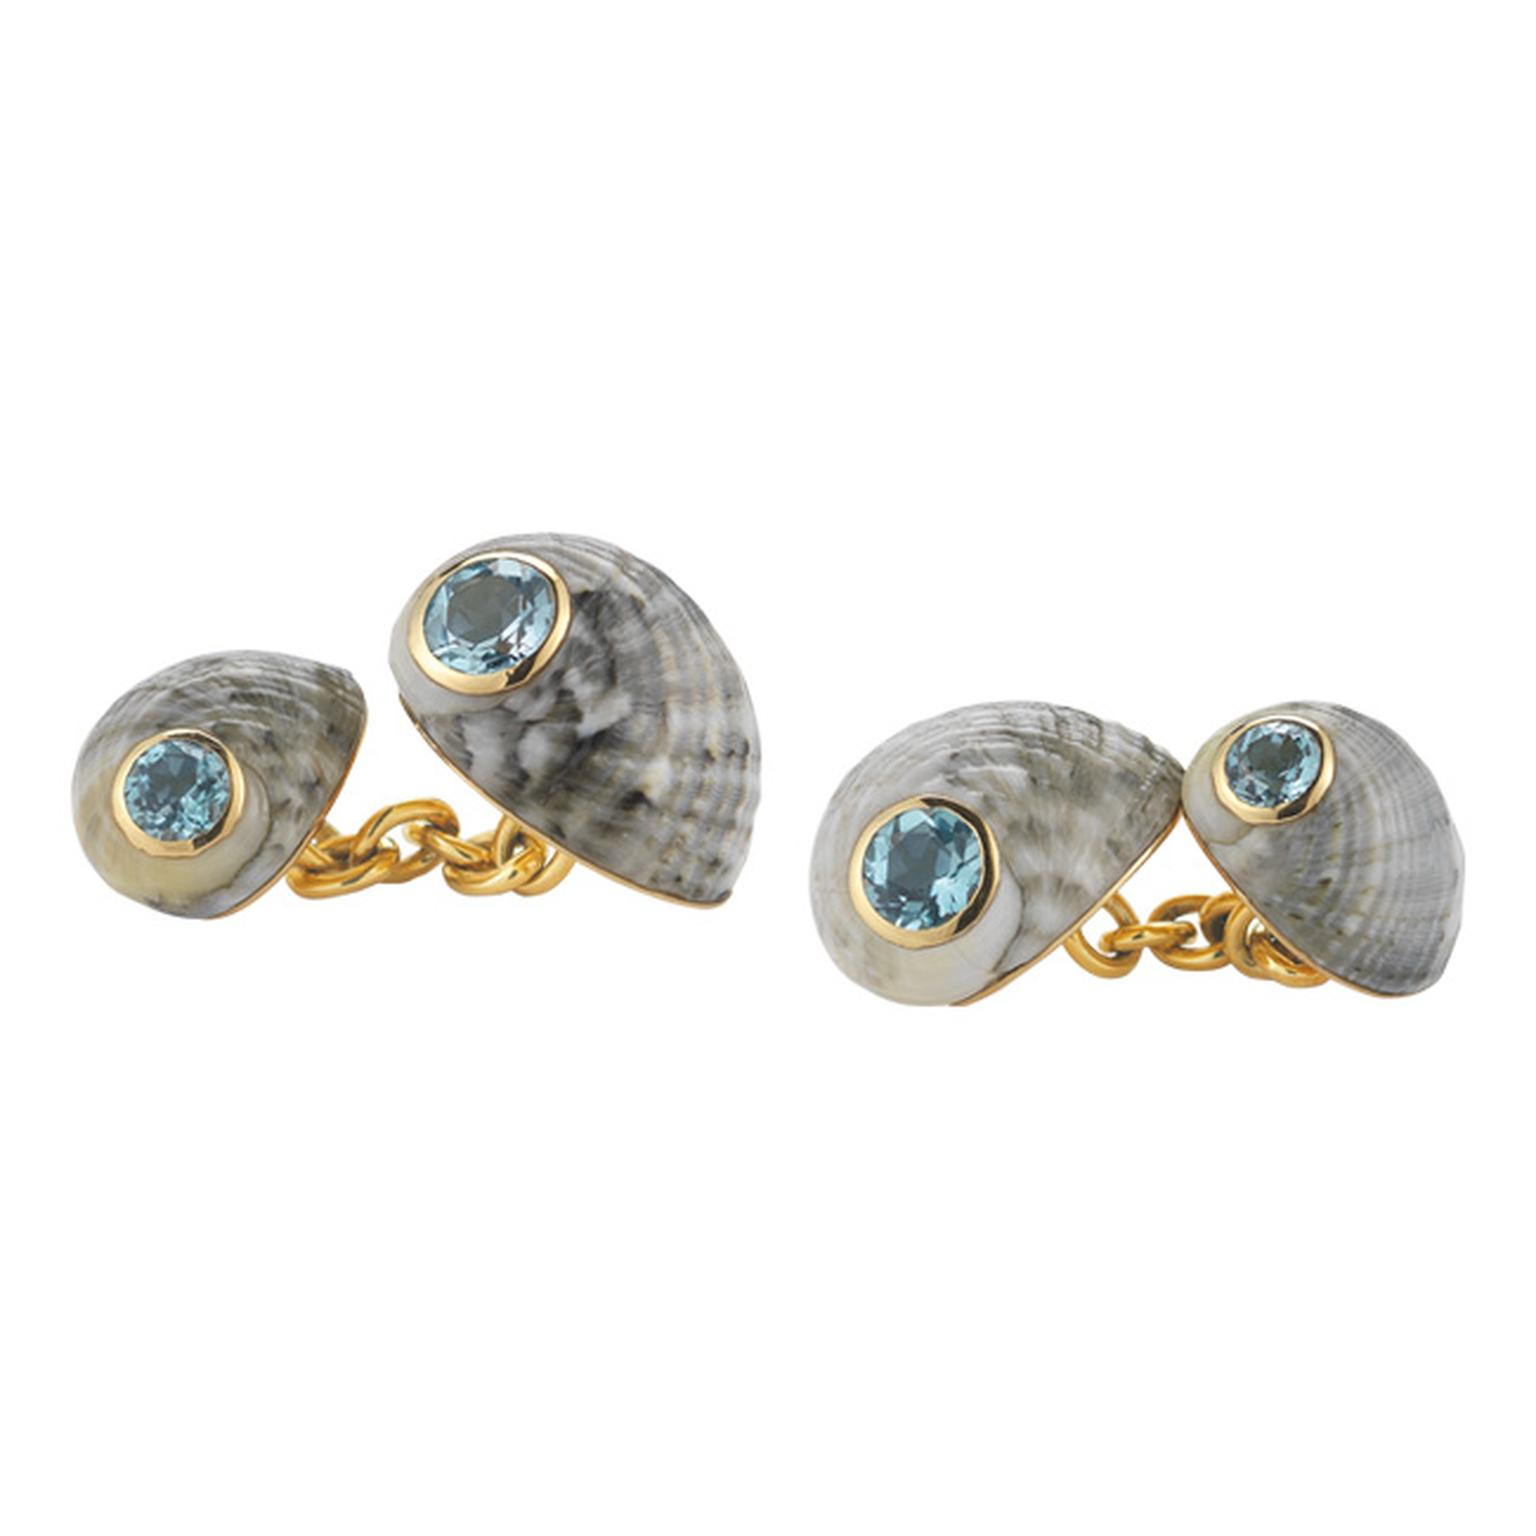 Trianon yellow gold chain-link cufflinks featuring one large and one small blue grey Nerita Chameleon shell that sit on either side of the cuff. The shells are decorated with faceted round-cut aqua blue topaz ($3,600).